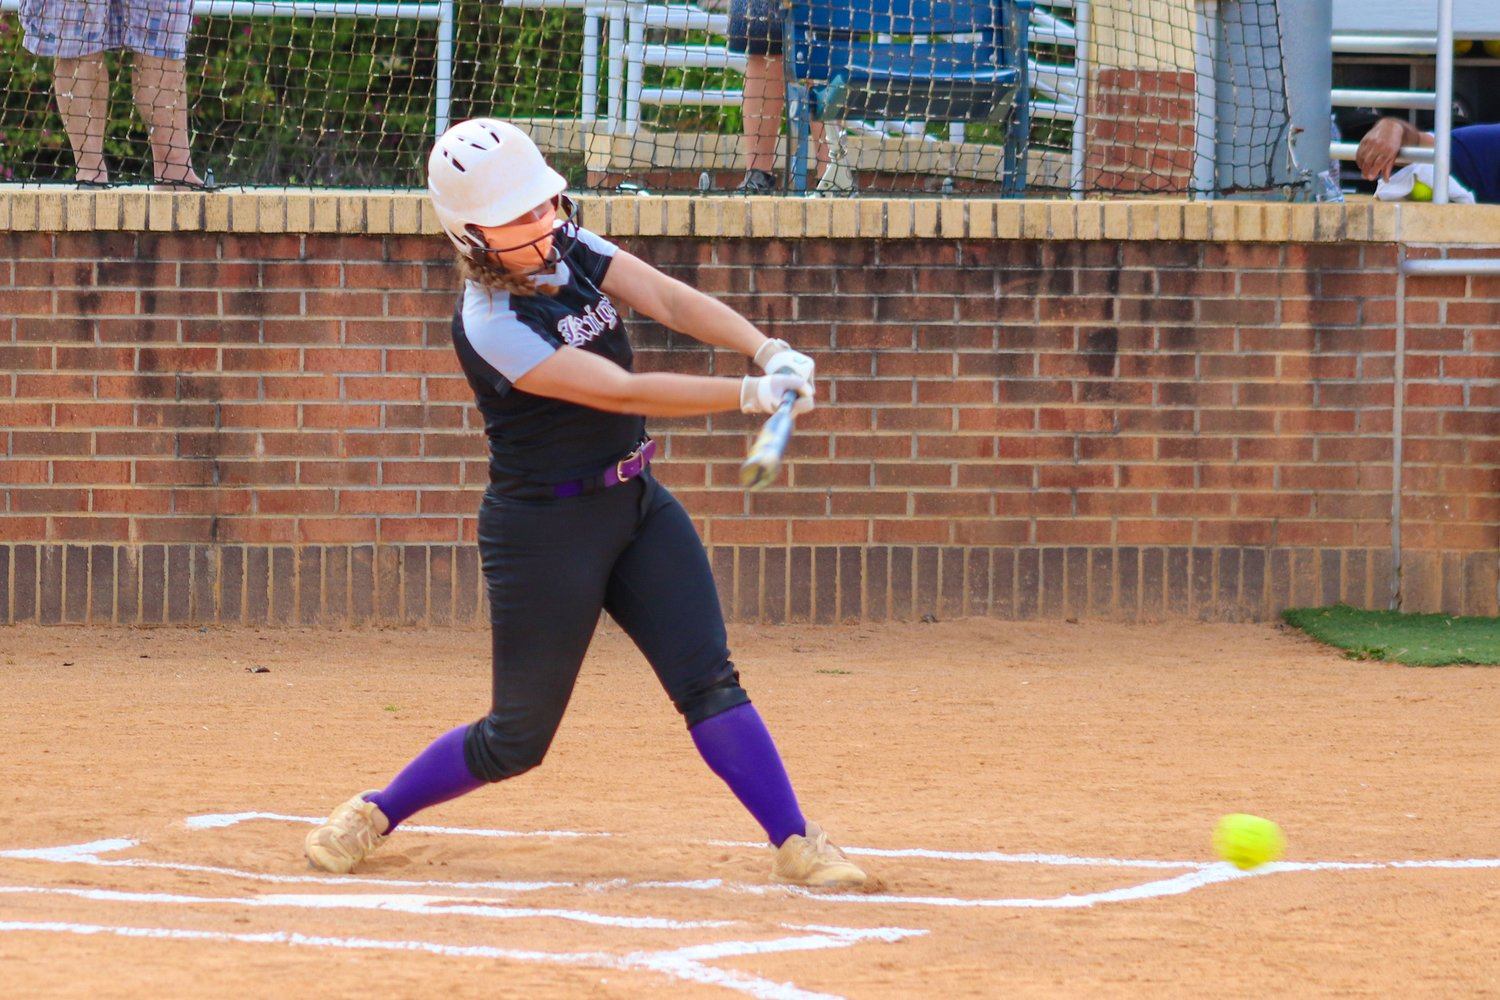 Chatham Charter junior Taylor Jones makes contact with the ball in her team's 4-3 loss to Forsyth Country Day on Thursday, April 15. Jones was 1-for-3 on the day.